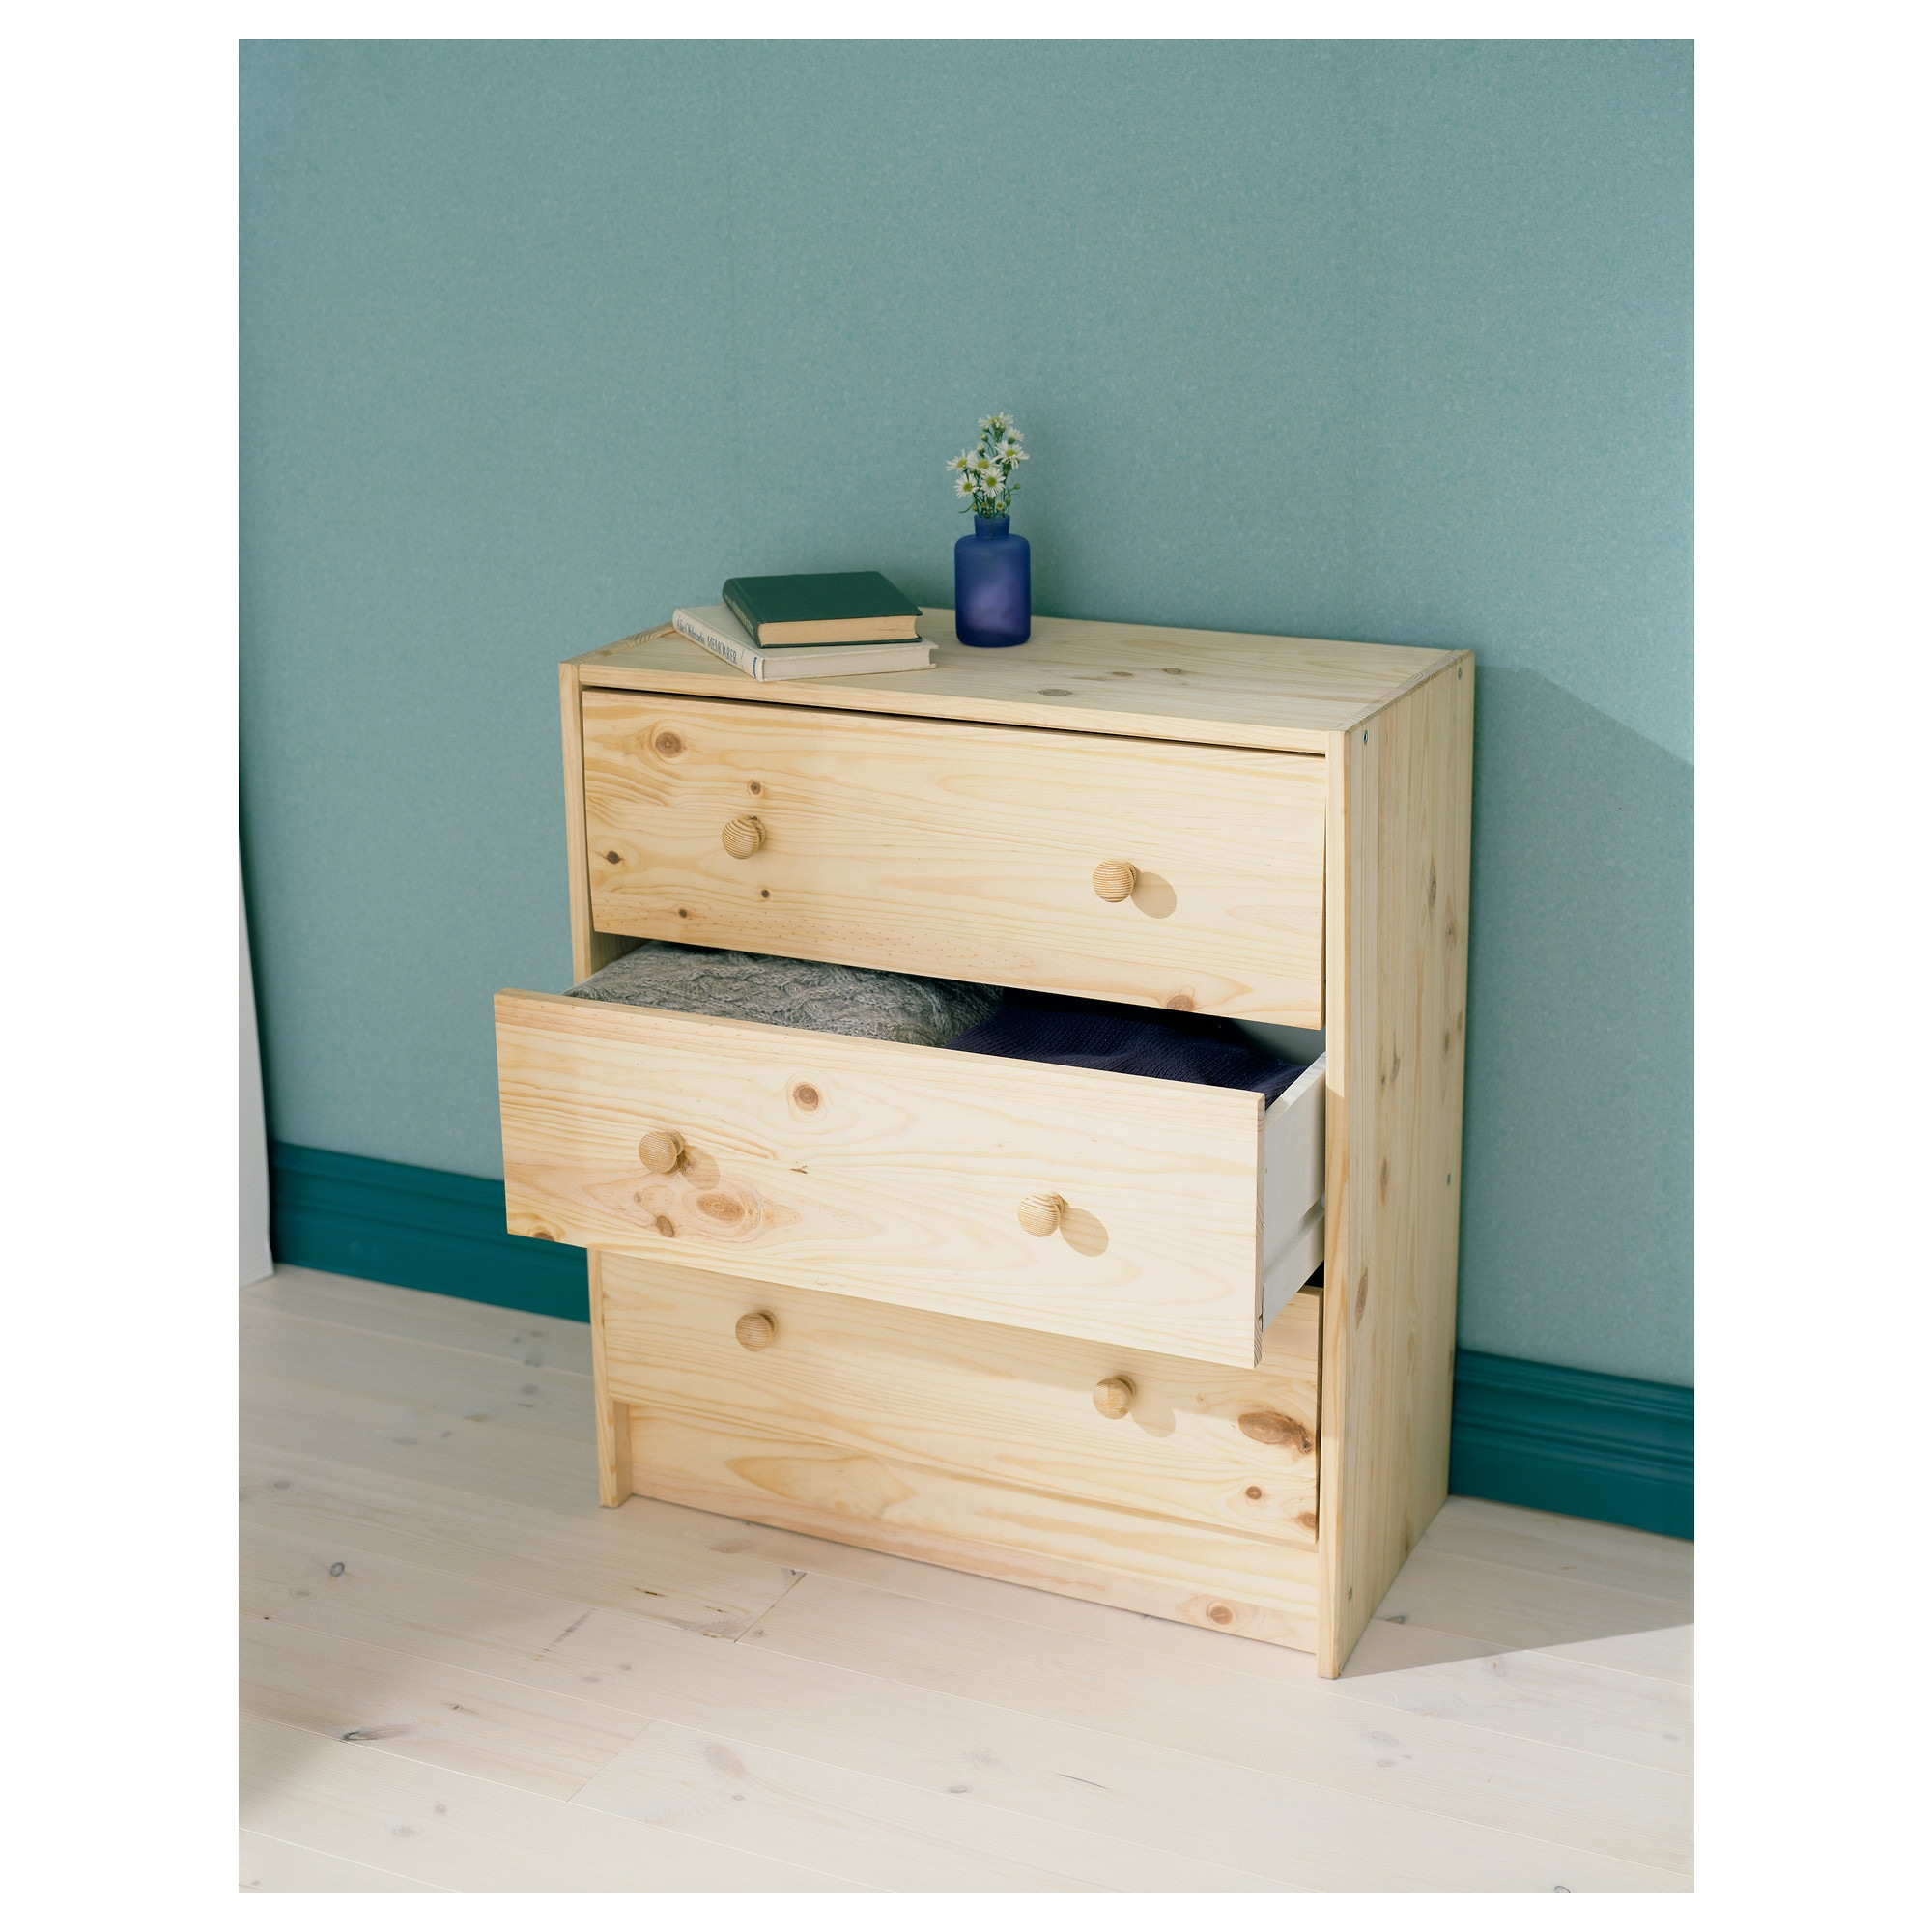 rast 3 drawer chest ikea rh ikea com